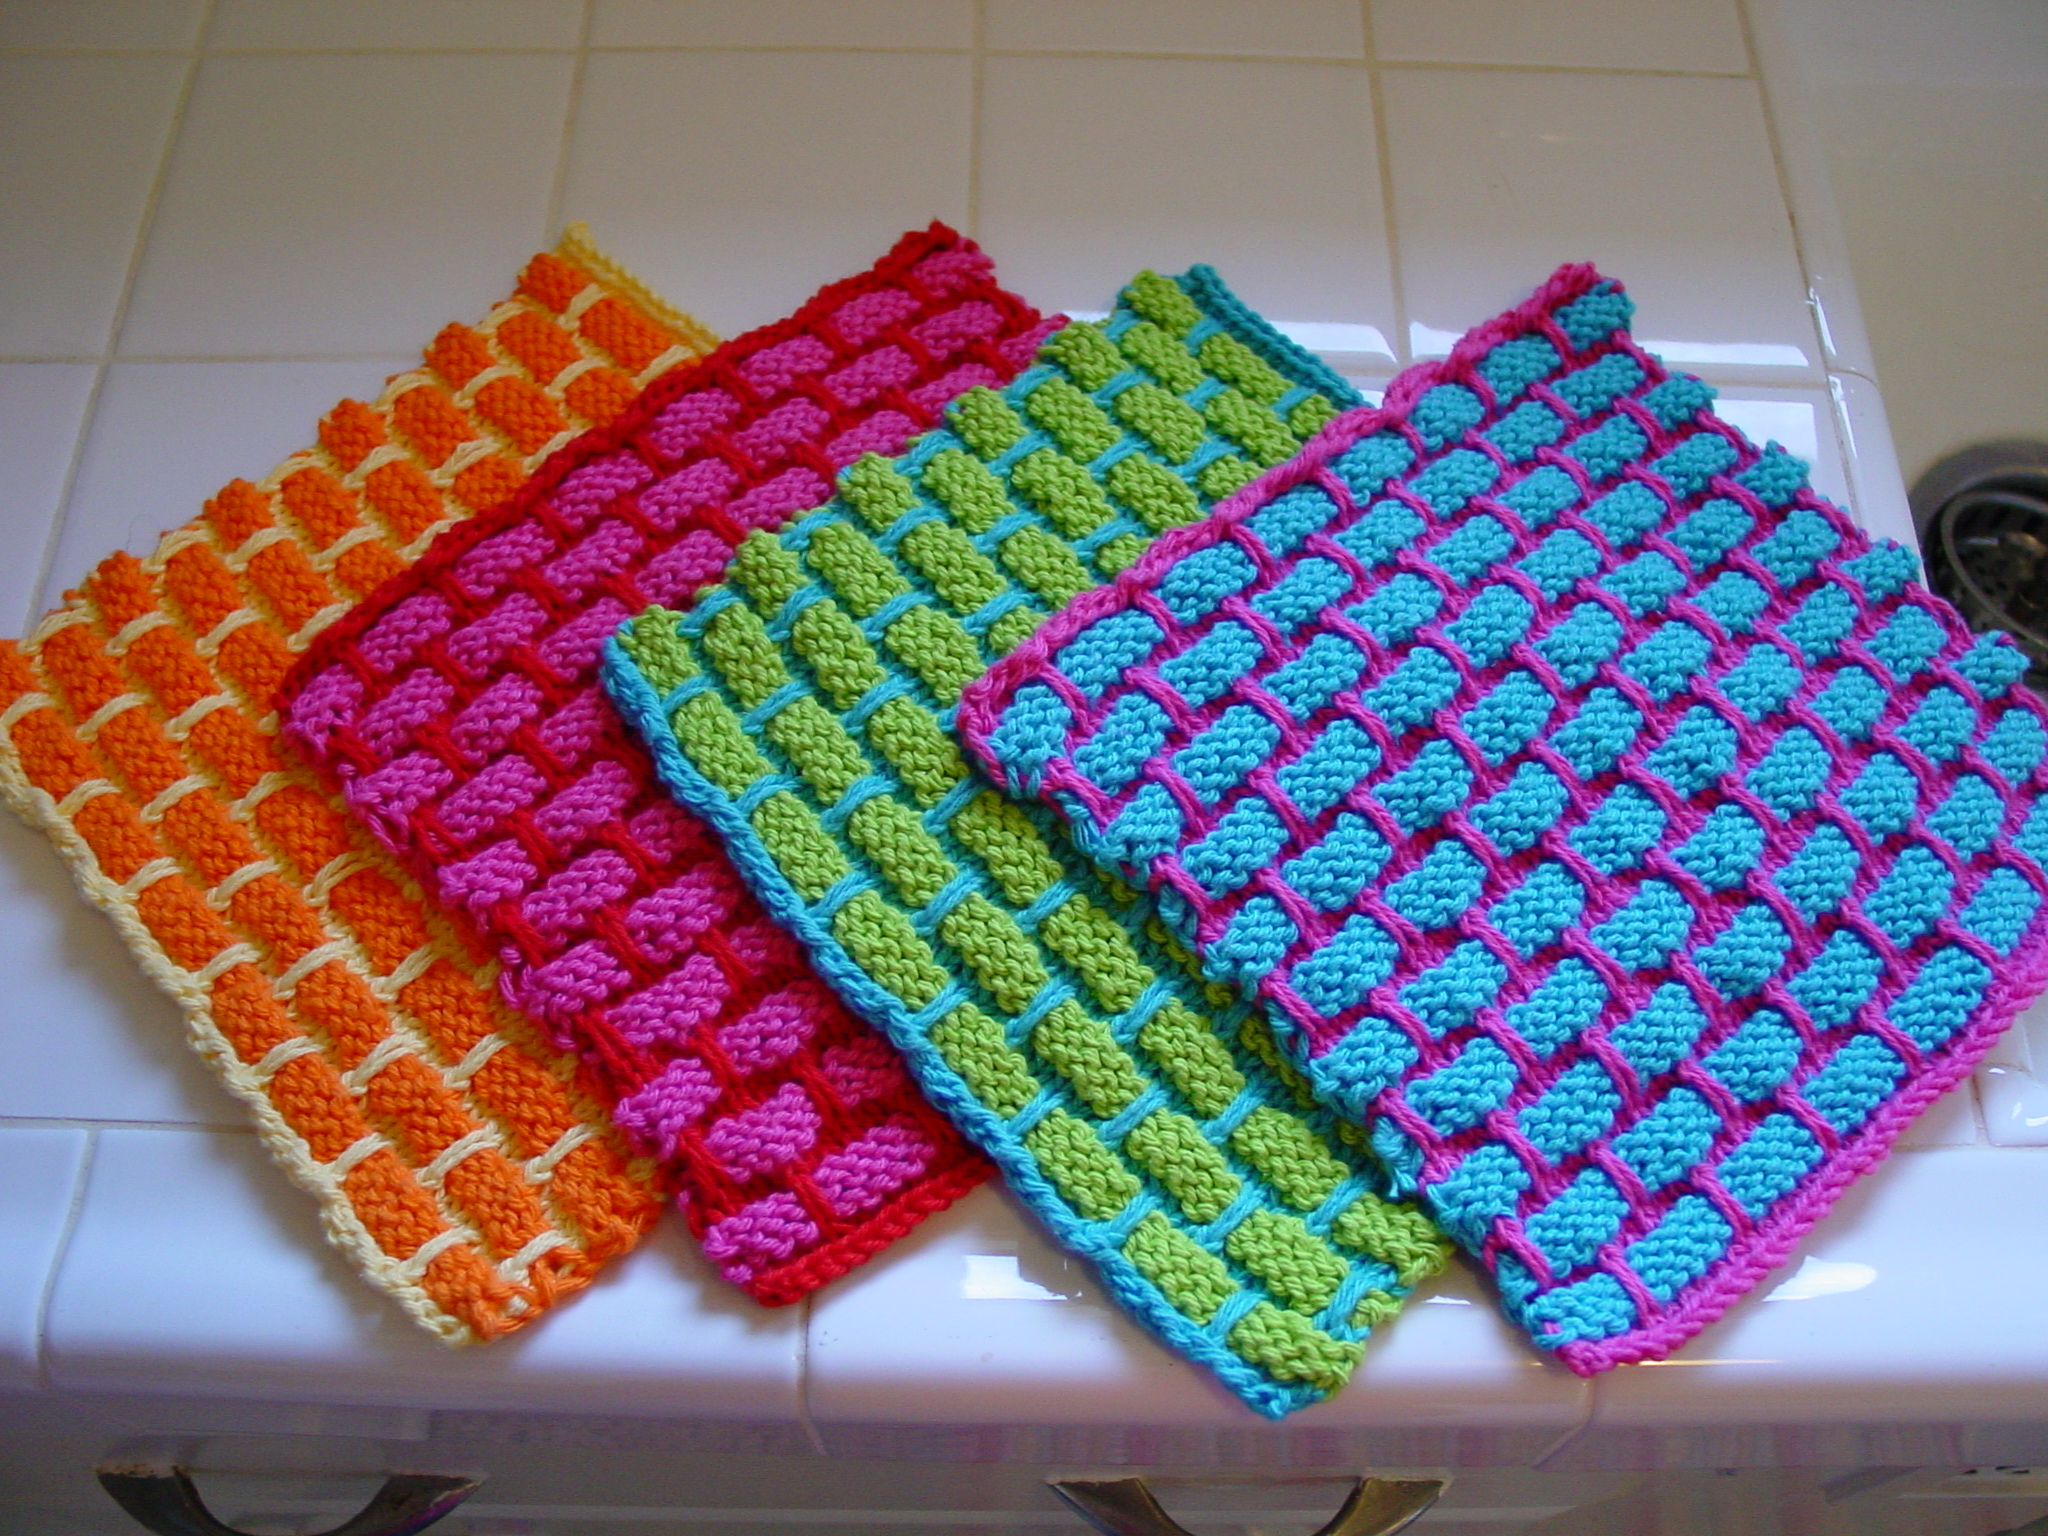 Knit Patterns For Dishcloths Free : Free Dishcloth Knit Patterns Patterns Gallery